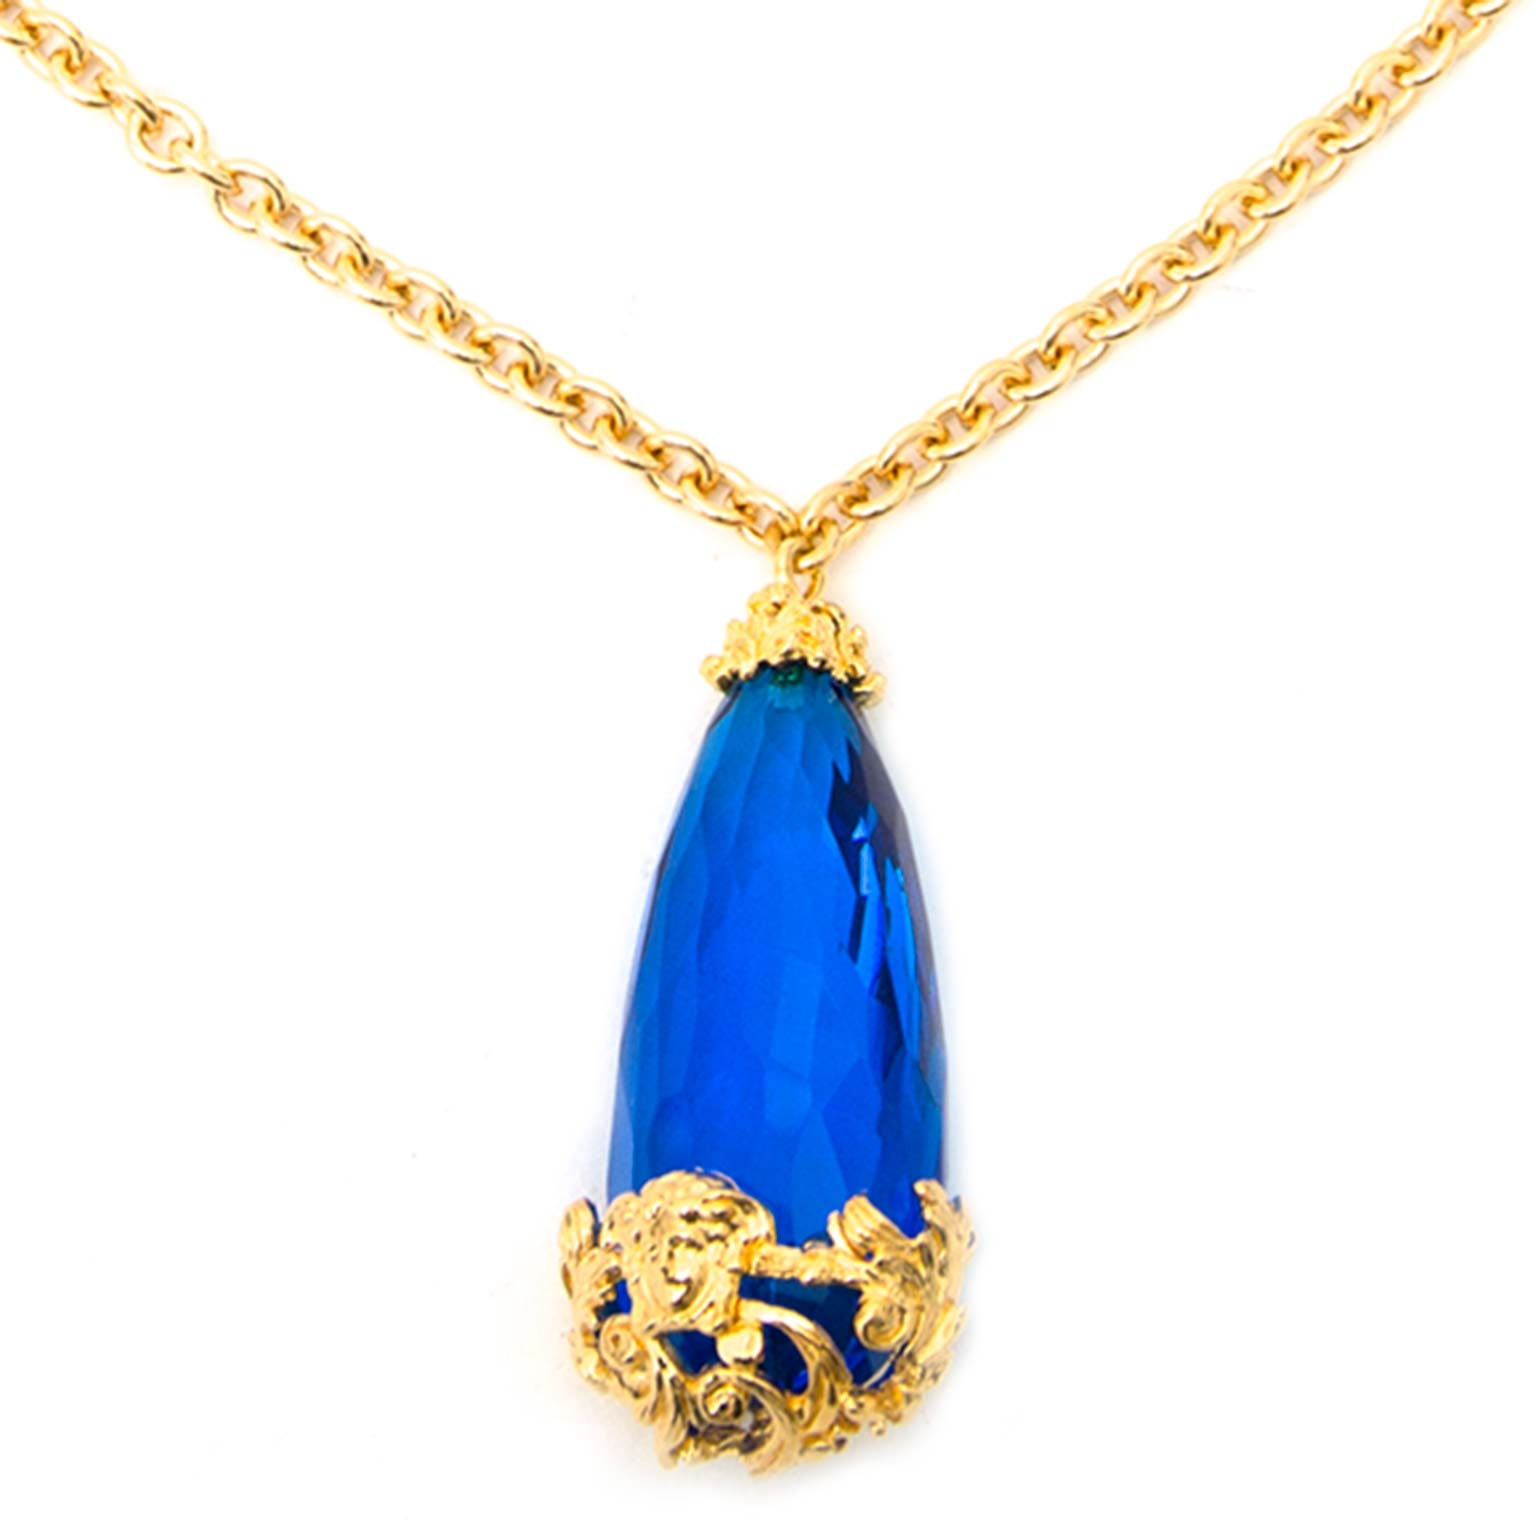 Versace Blue Stone Gold Chain Necklace Buy authentic designer Versace secondhand jewellery at Labellov at the best price. Safe and secure shopping. Koop tweedehands authentieke Versace juwelen bij designer webwinkel labellov.